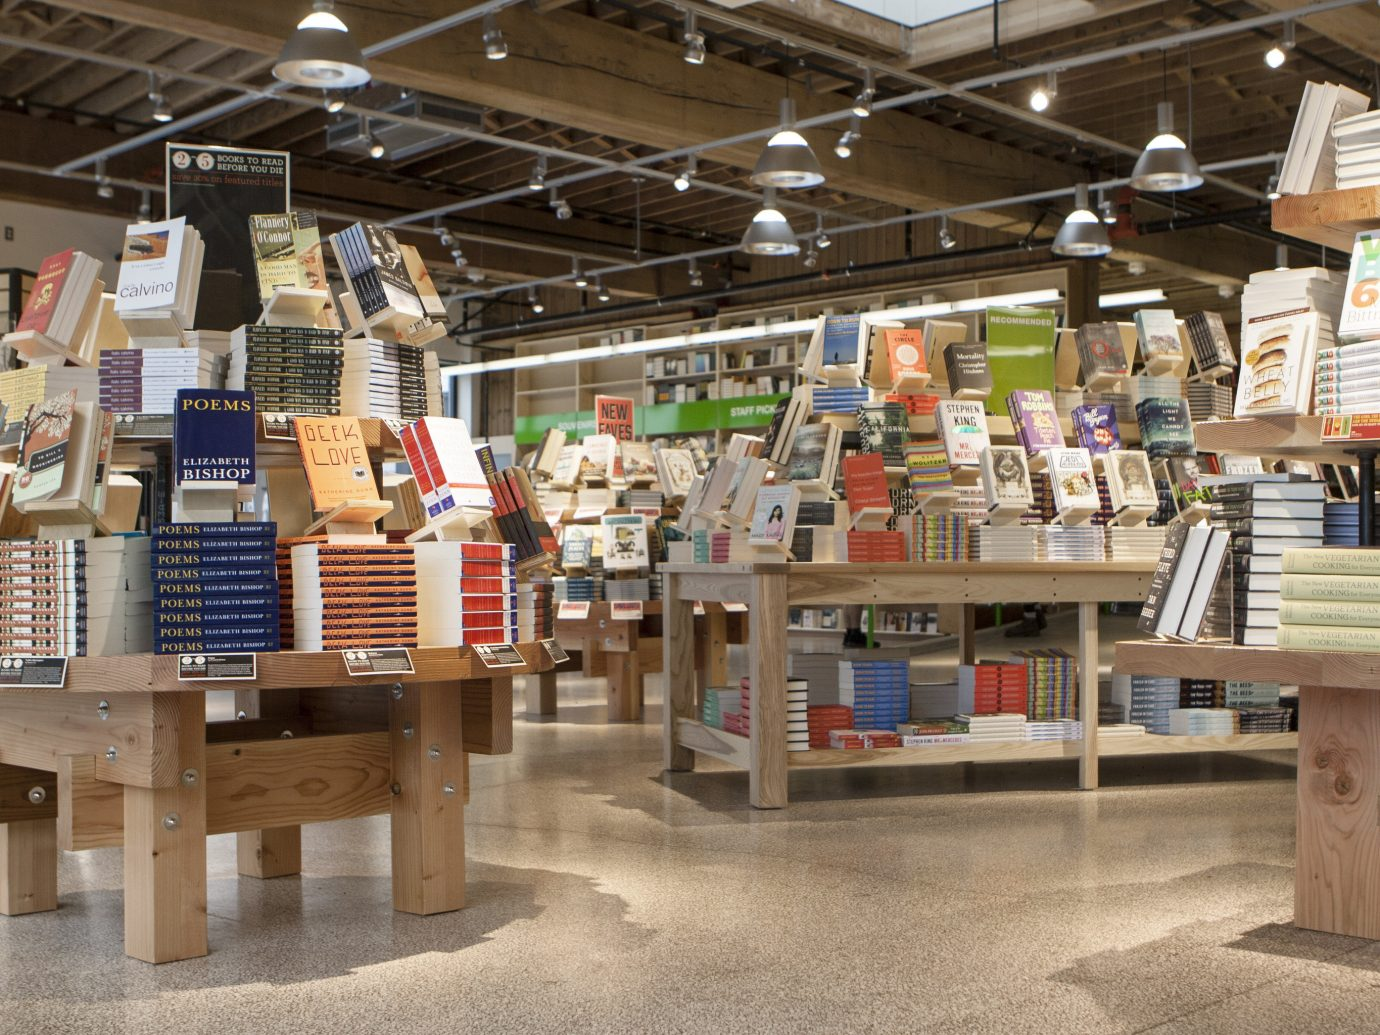 Food + Drink Offbeat Style + Design Trip Ideas Weekend Getaways indoor ceiling floor City public space bookselling retail supermarket library grocery store market